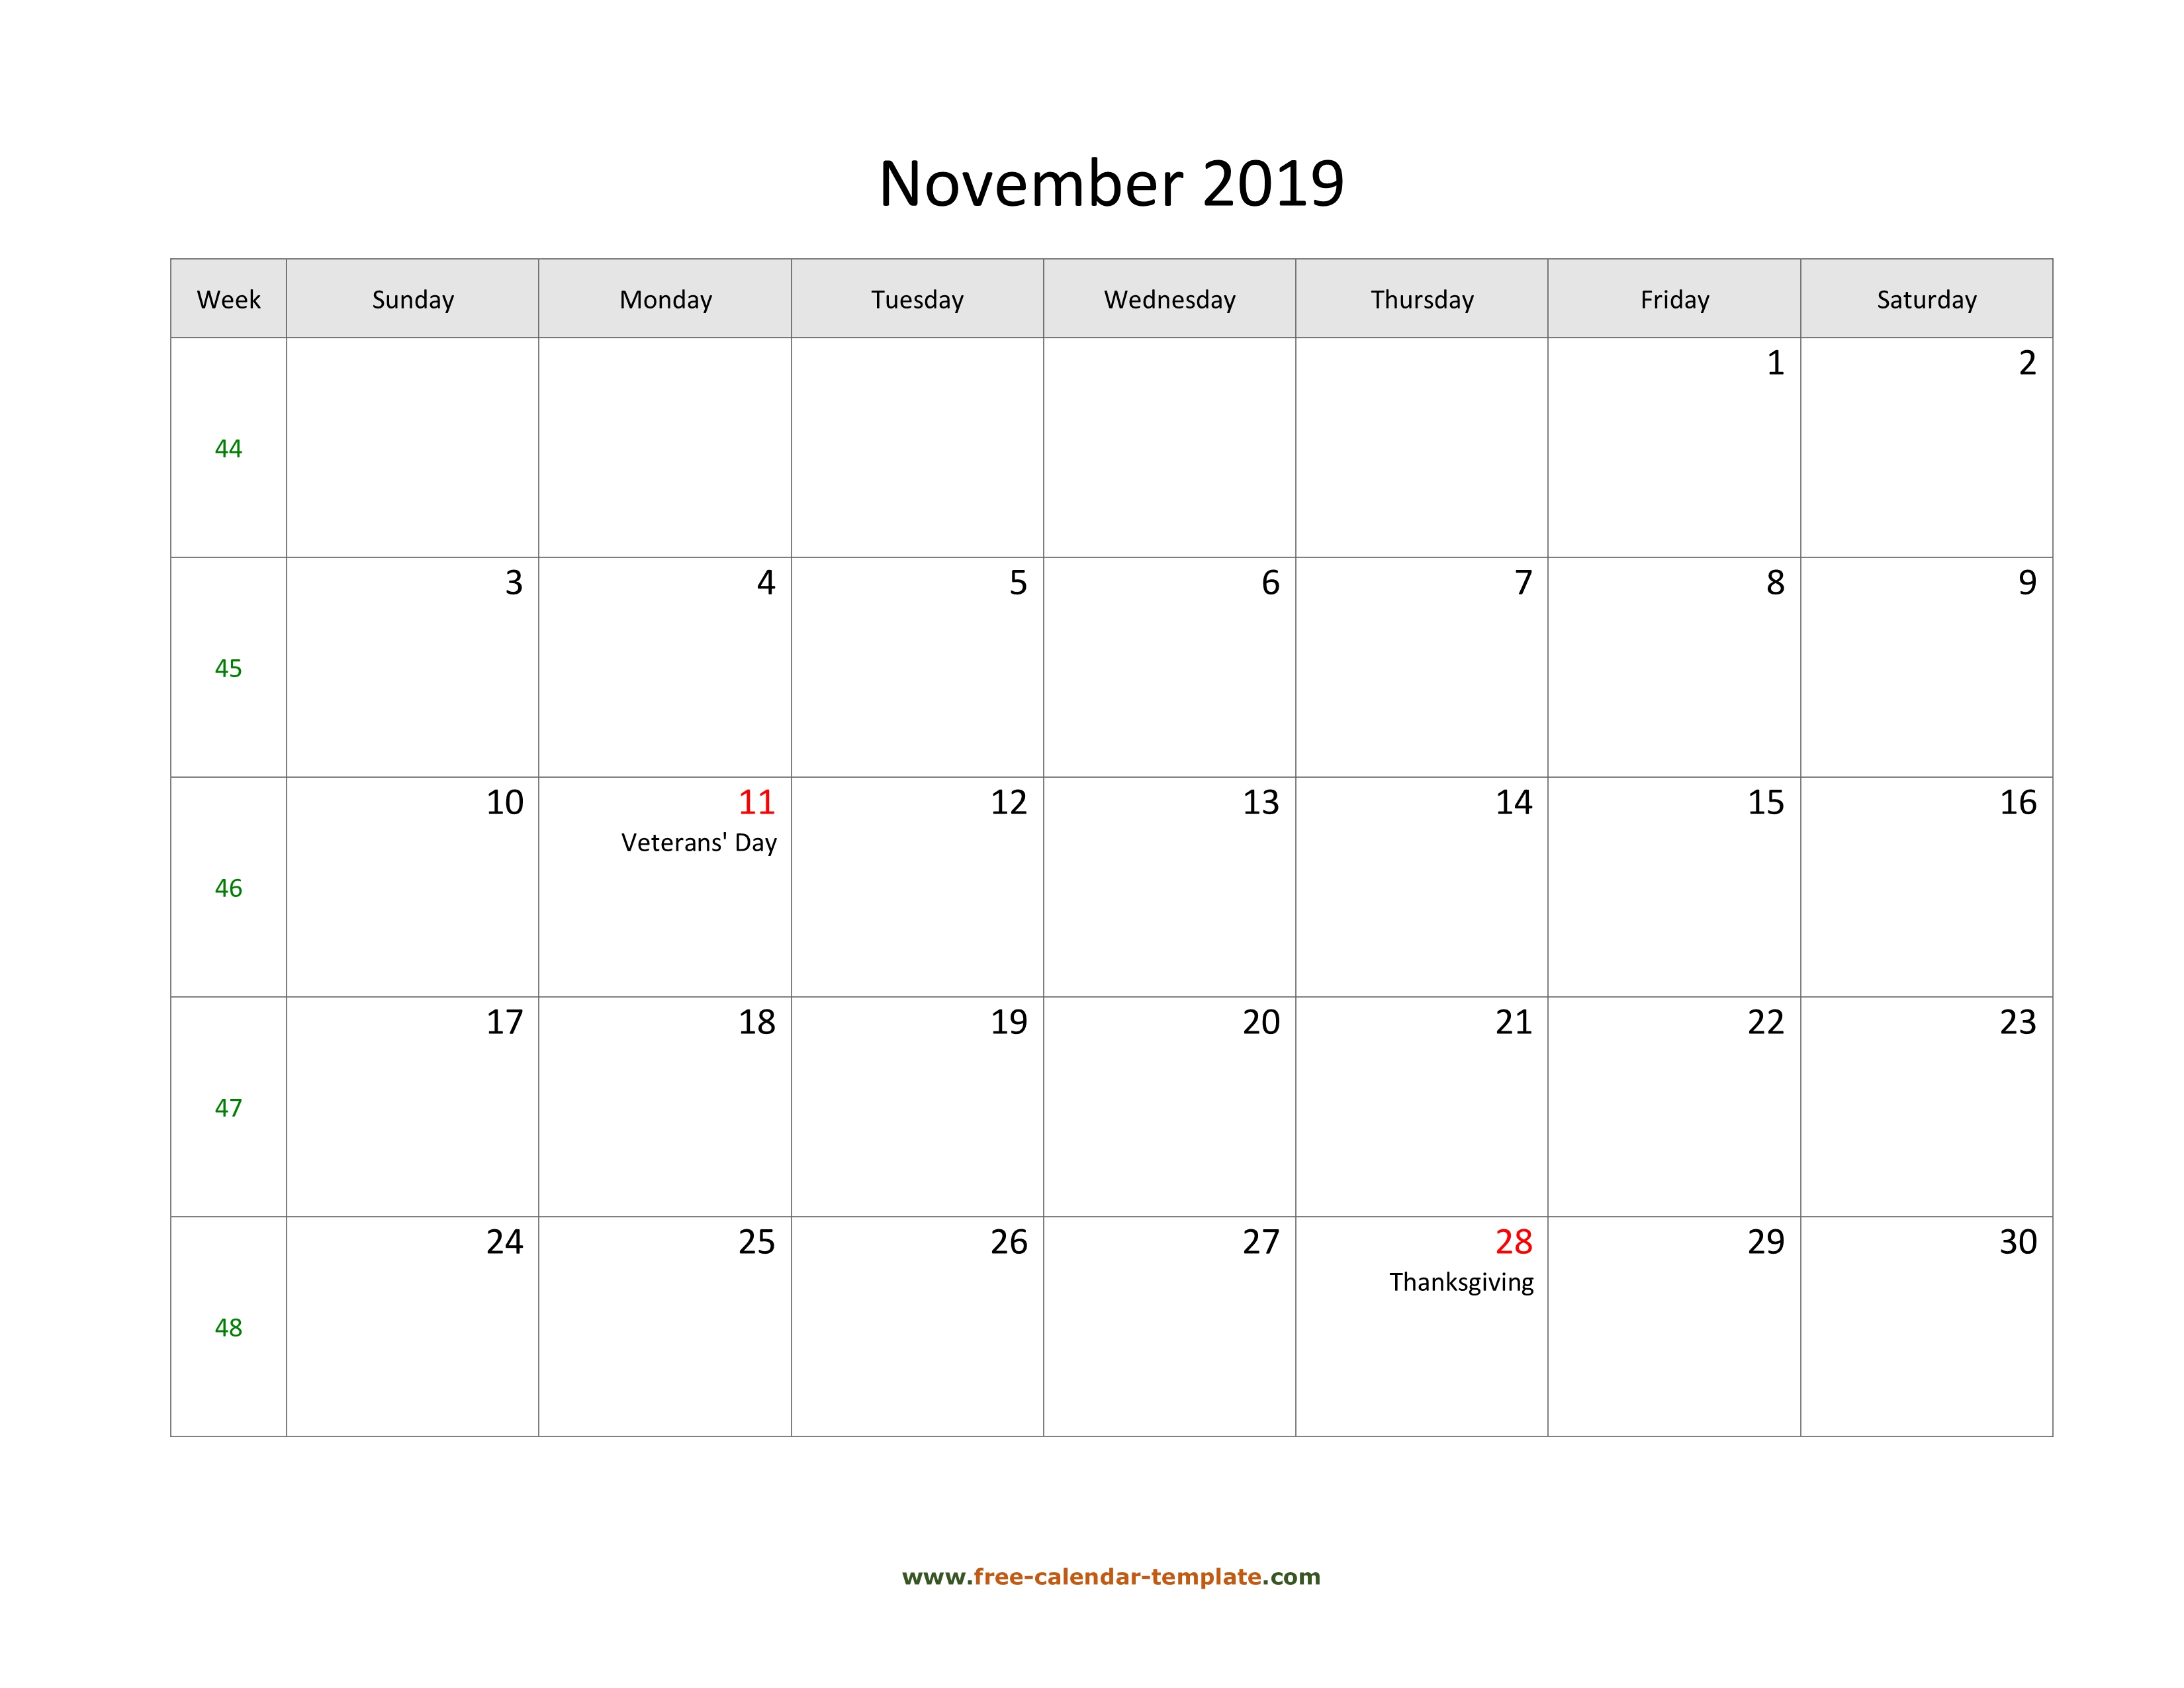 November 2019 Free Calendar Tempplate | Freecalendar with regard to Calendar With Blank Squares